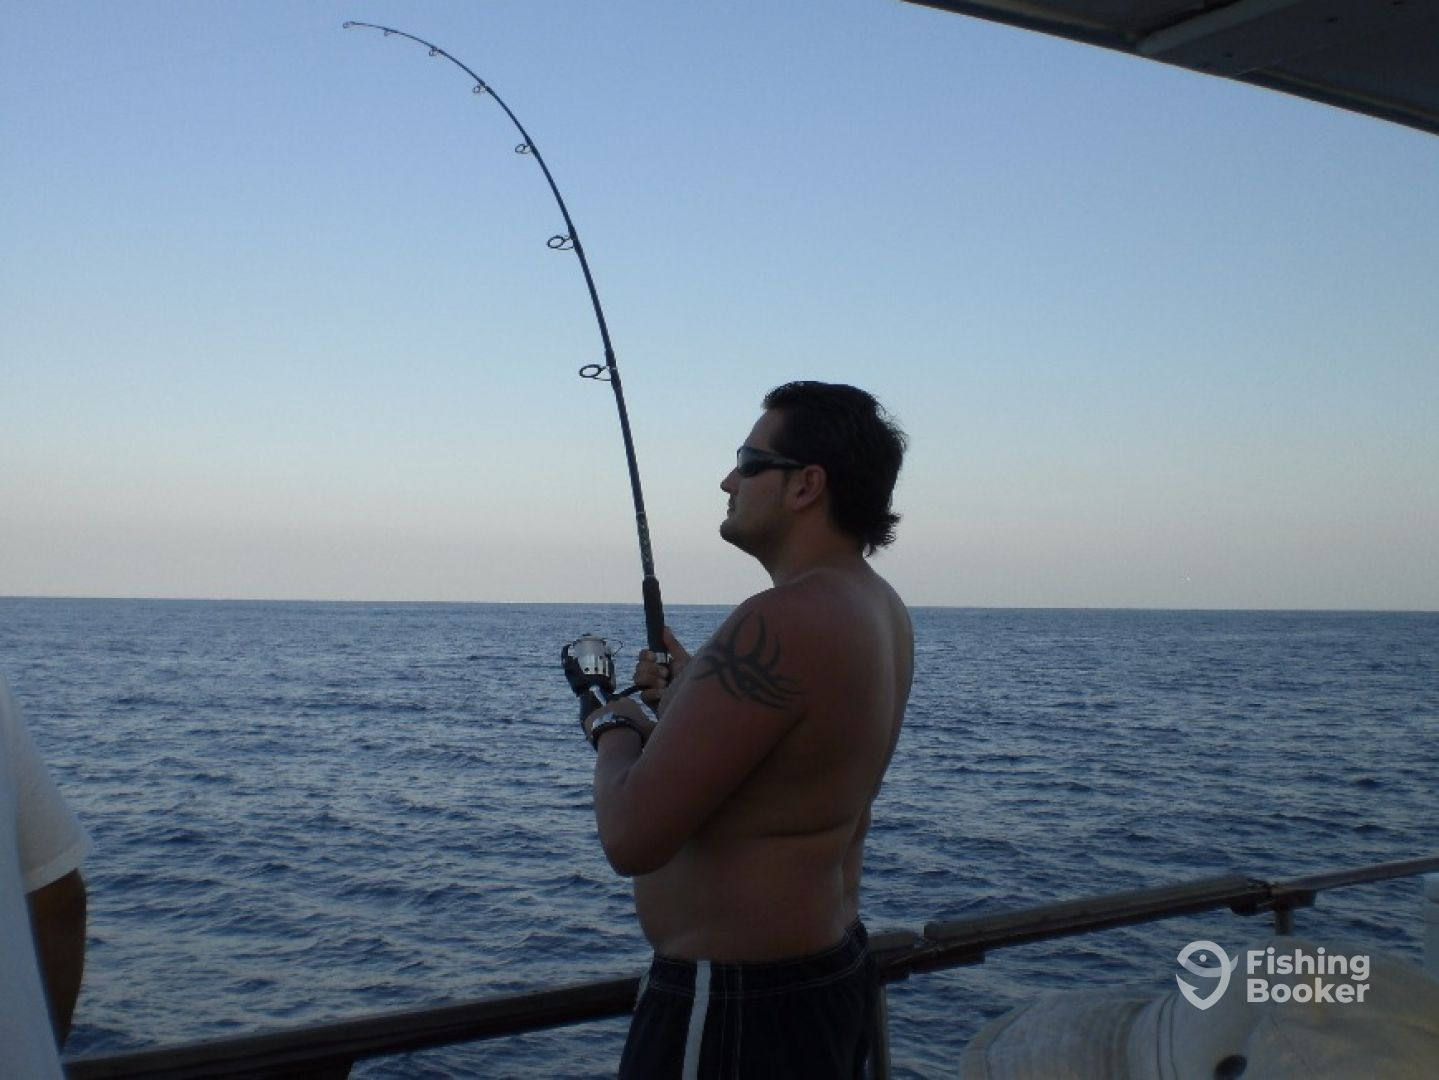 Man fighting his trophy. He landed a beautiful sailfish